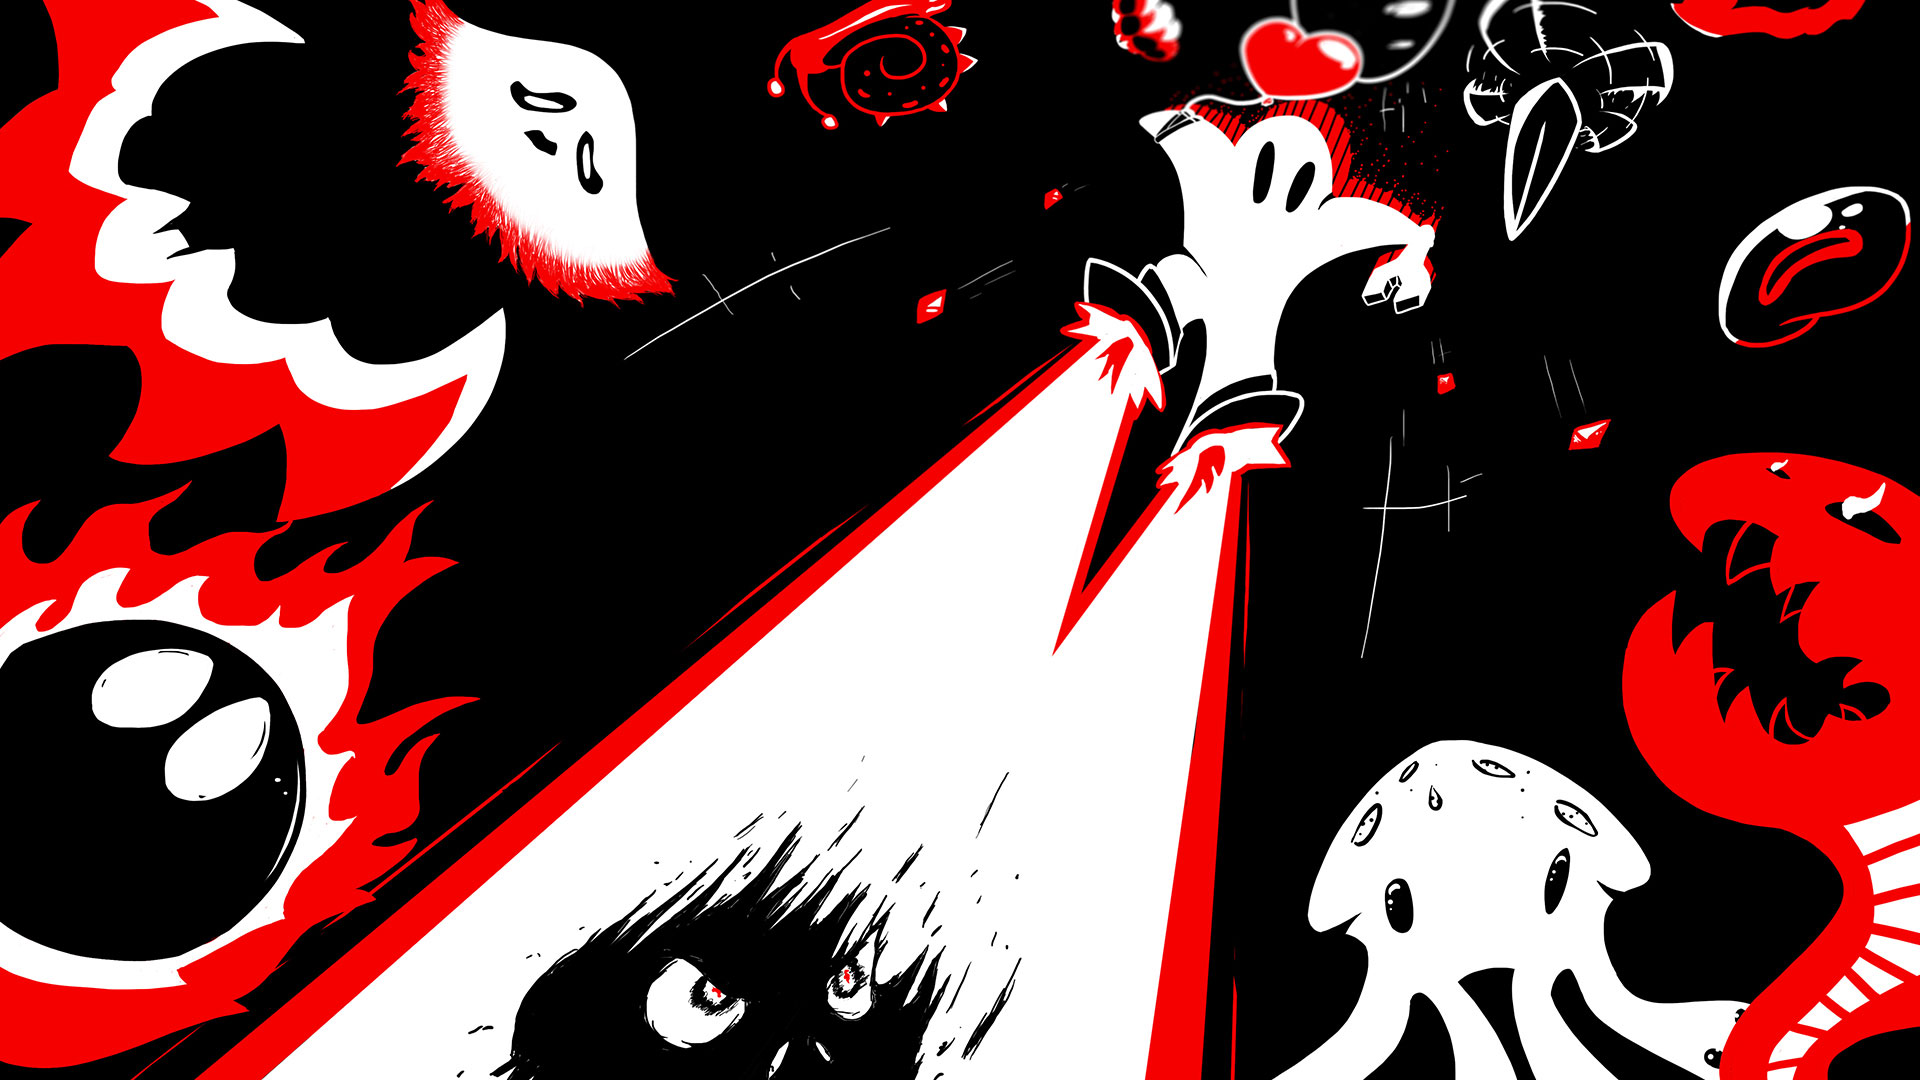 Free Downwell Wallpaper in 1920x1080